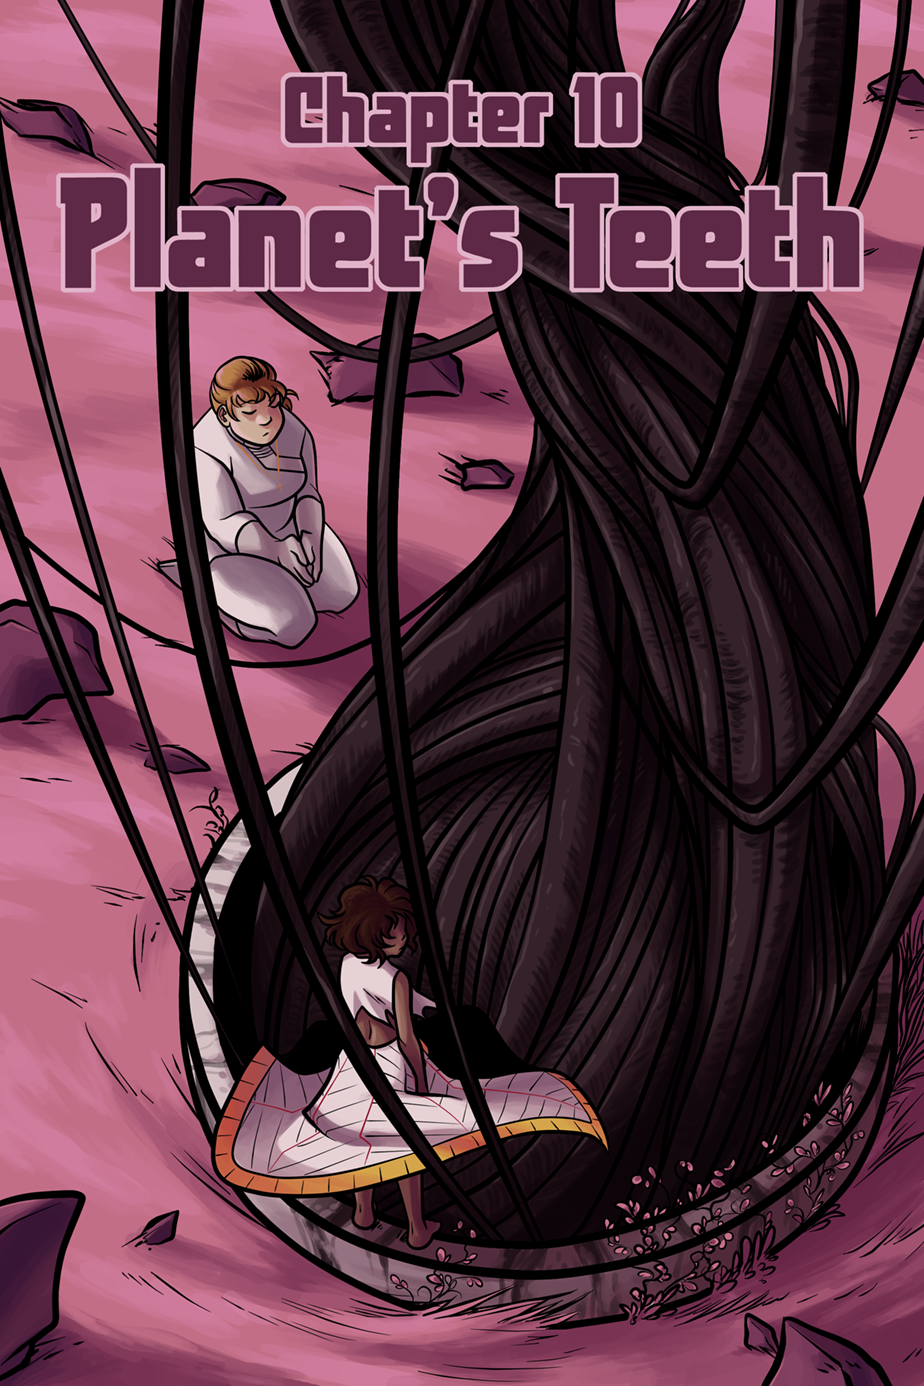 Chapter 10 – Planet's Teeth